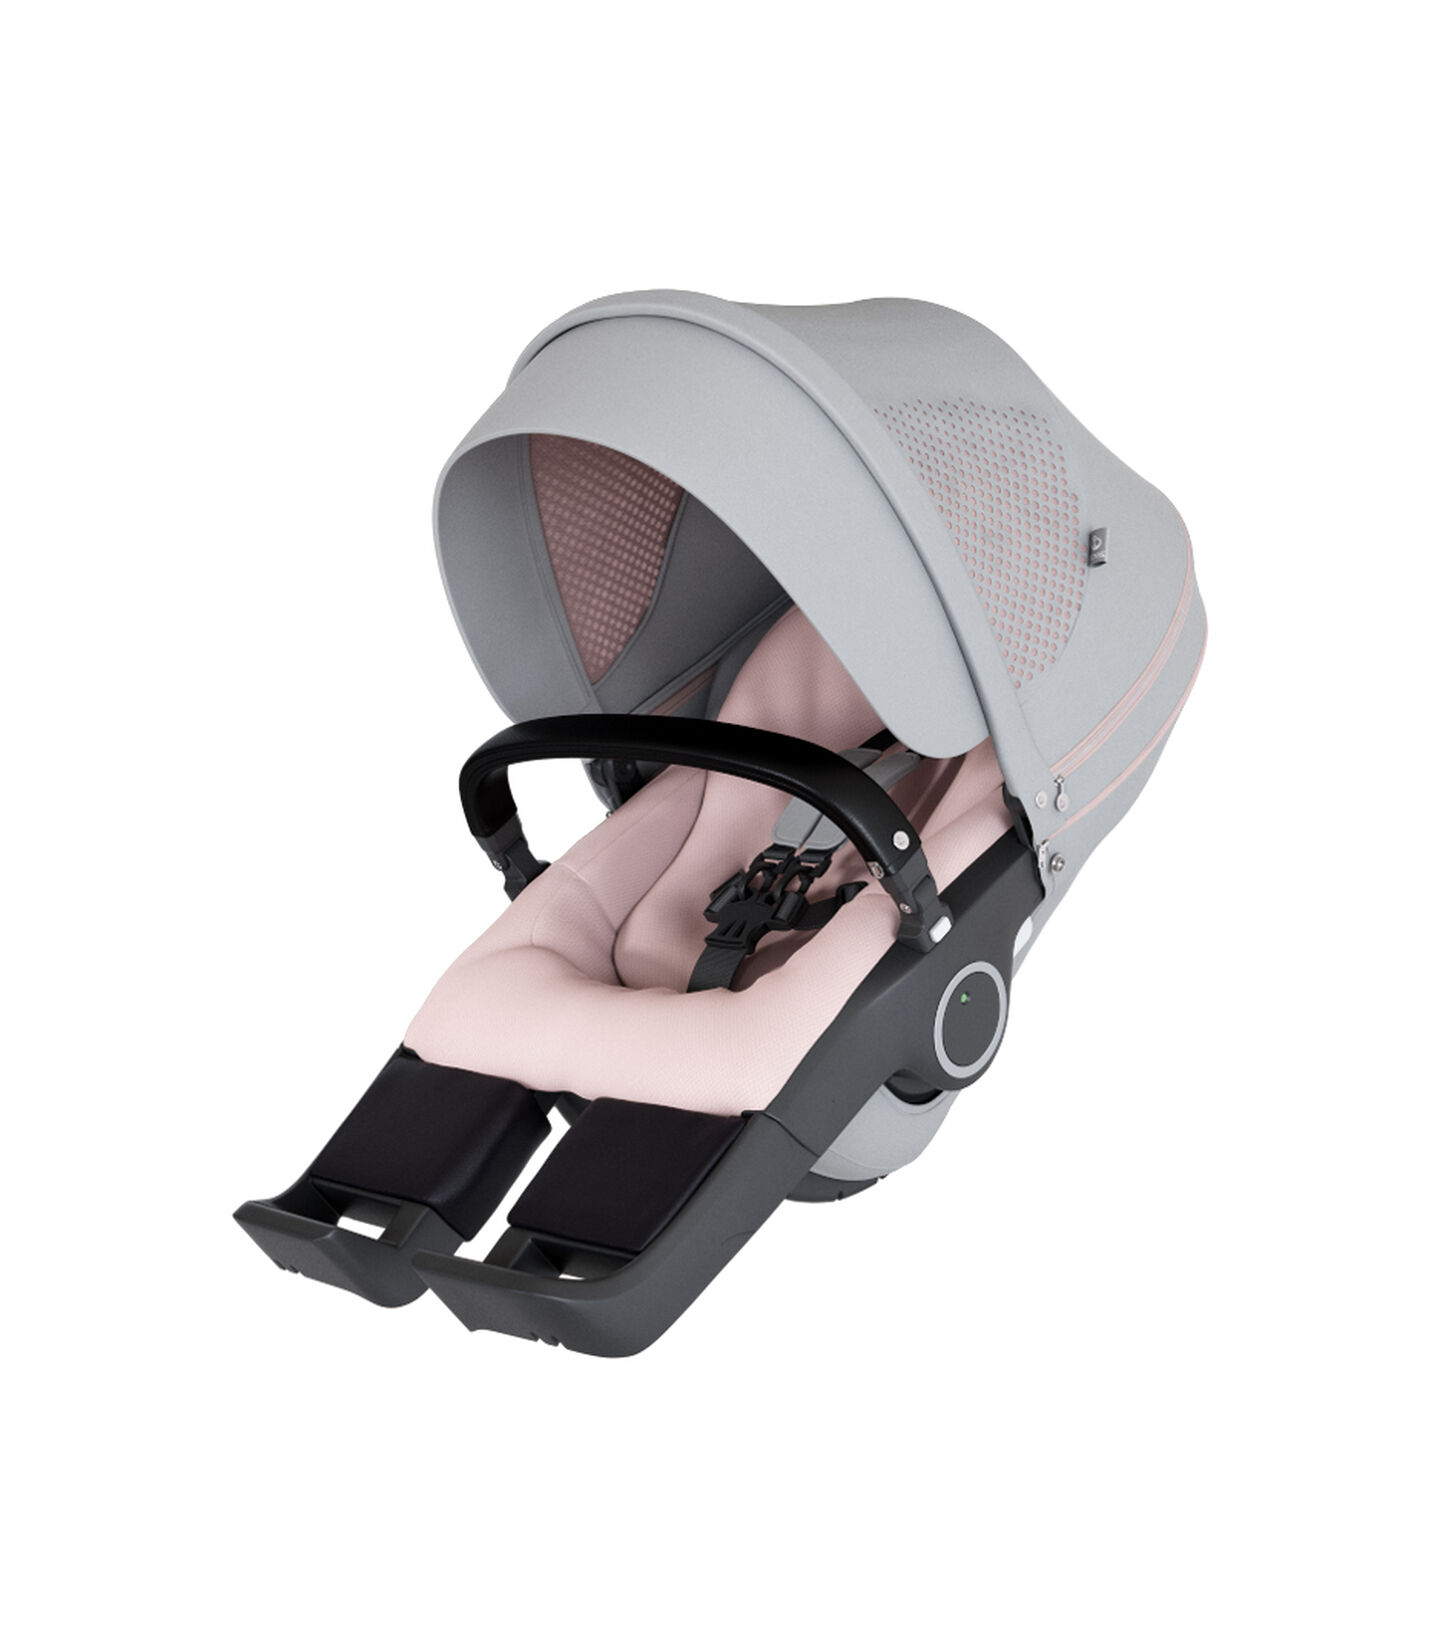 Stokke® Stroller Seat Athleisure Pink, Athleisure Pink, mainview view 1